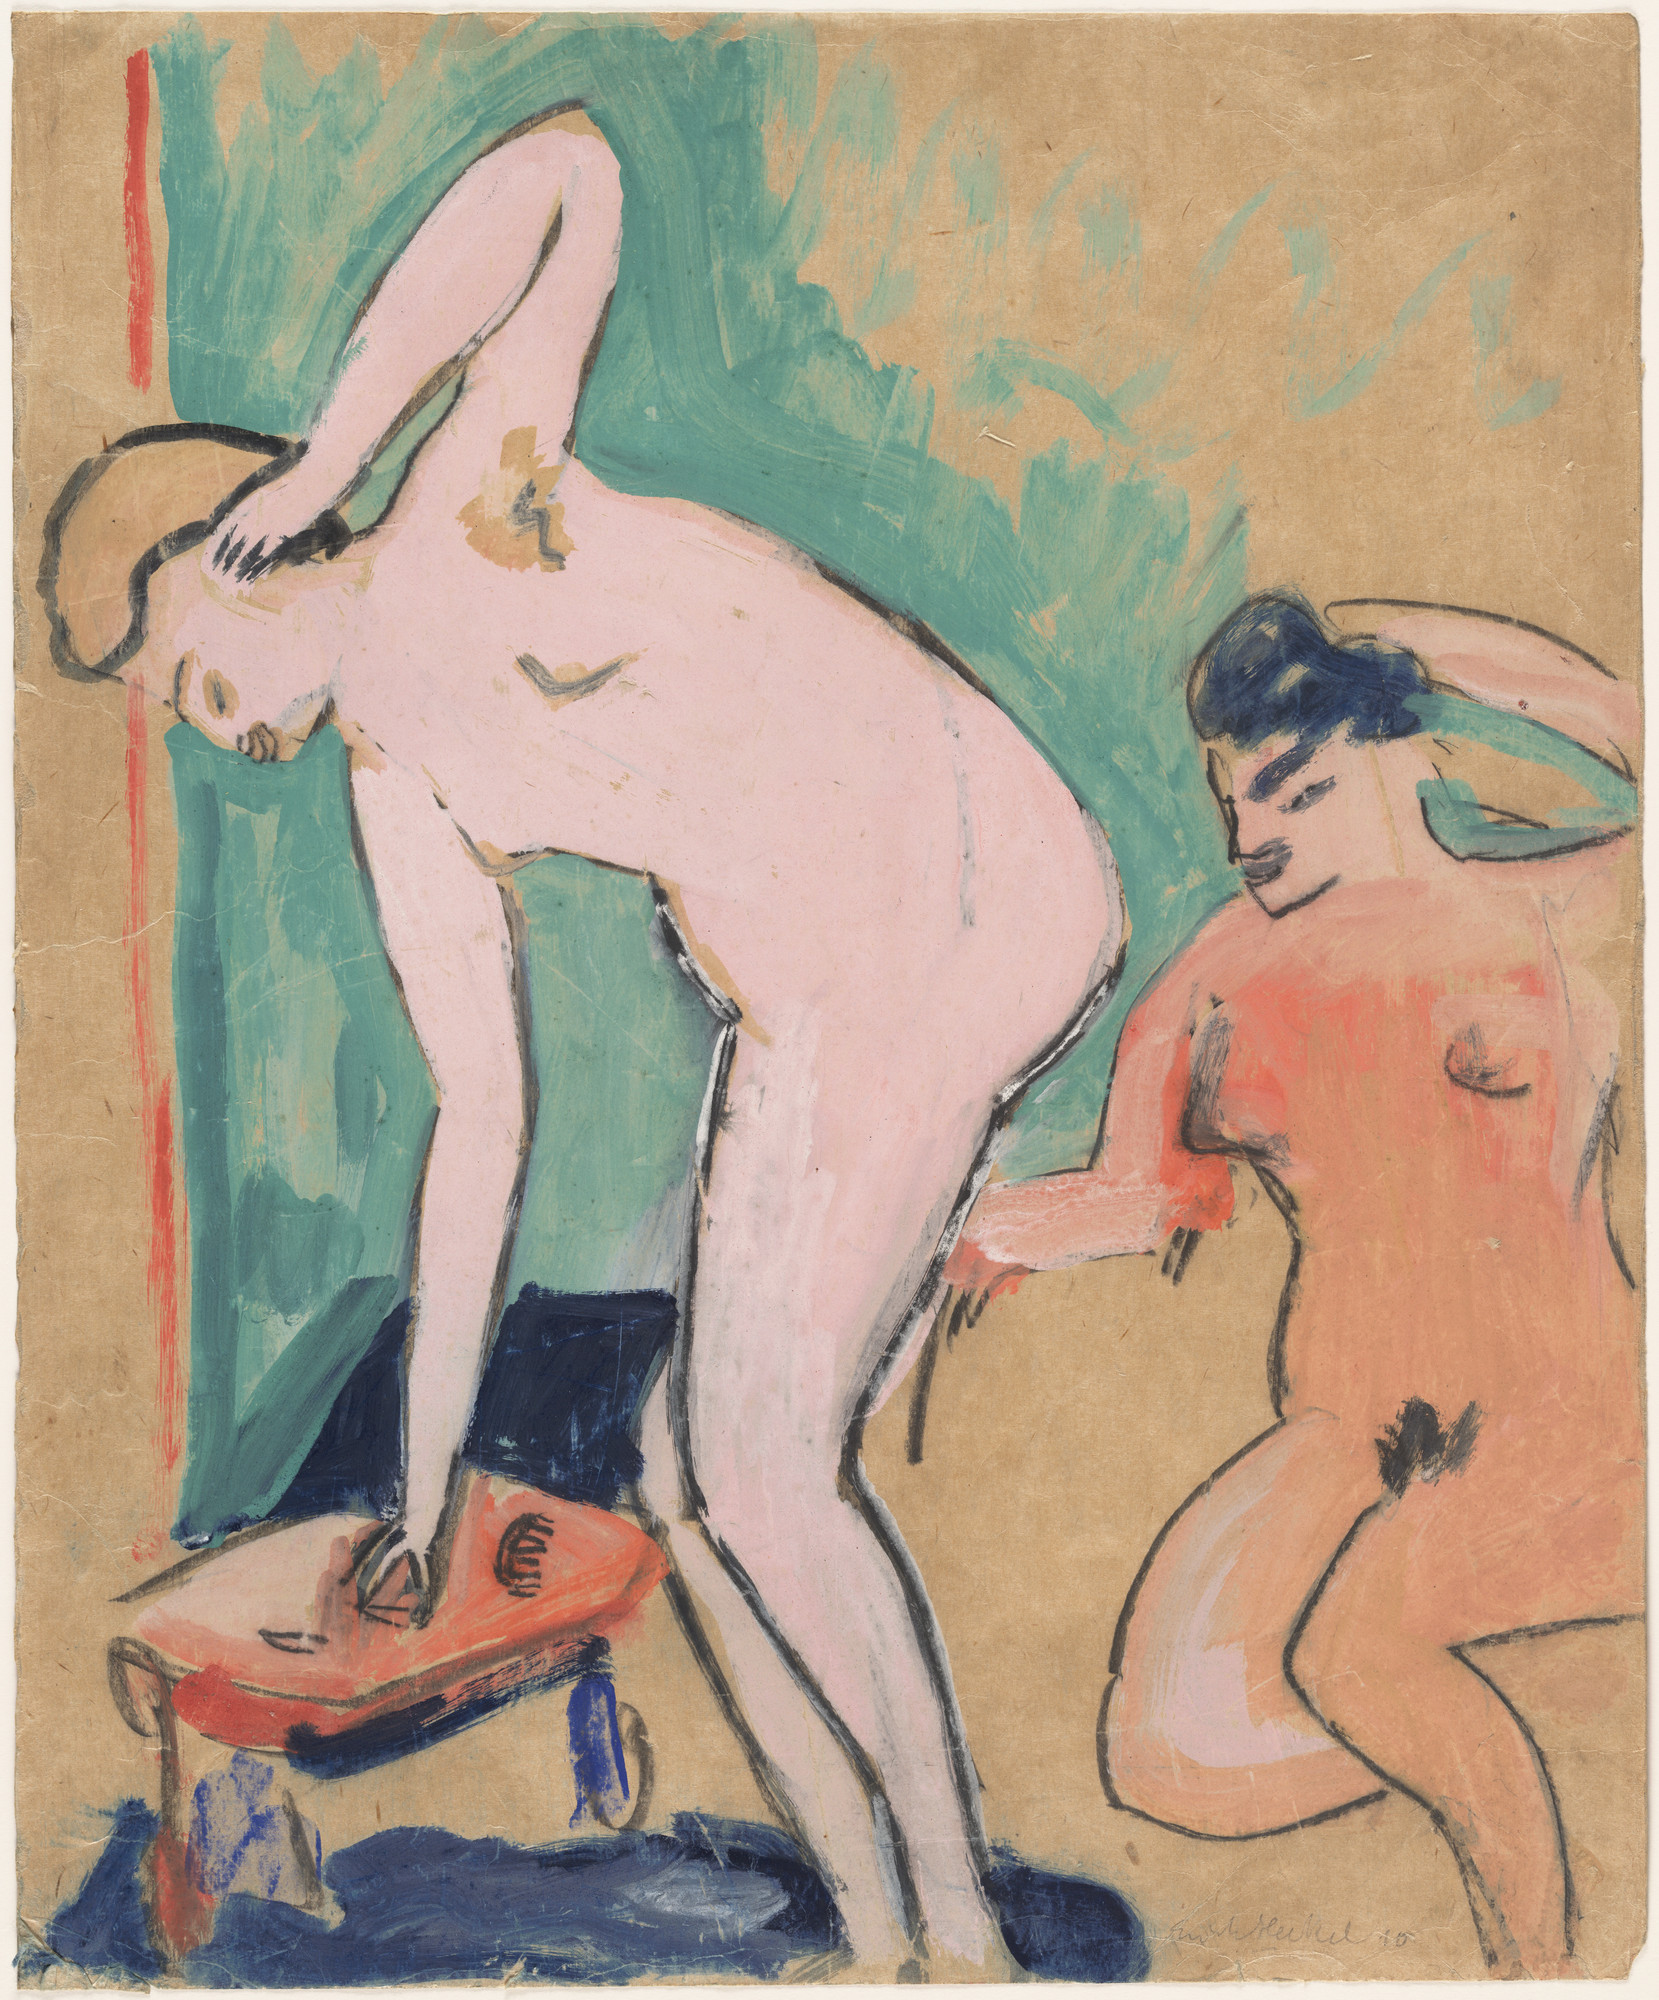 Erich Heckel. Two Female Nudes (Zwei weibliche Akte). 1910. Gouache and pencil on paper, 23 1⁄2 × 19 3/8″ (59.7 × 49.2 cm). Gift of Jo Carole and Ronald S. Lauder. © 2016 Erich Heckel / Artists Rights Society (ARS), New York / VG Bild-Kunst, Germany. Photo: John Wronn